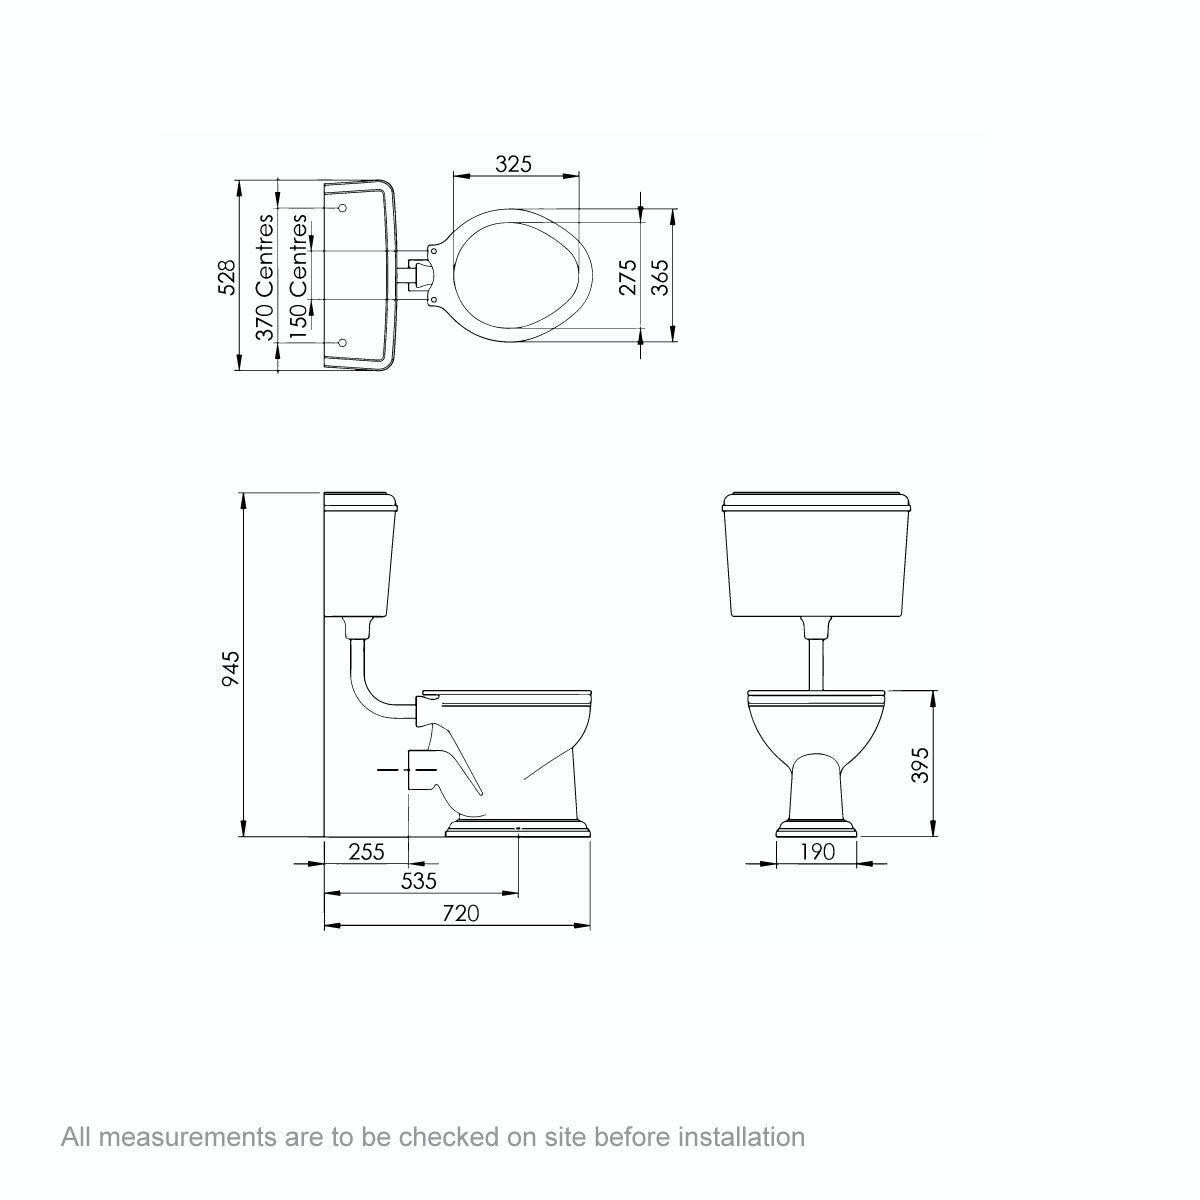 Dimensions for Belle de Louvain Bellini low level toilet and full pedestal suite with incalux fittings and taps